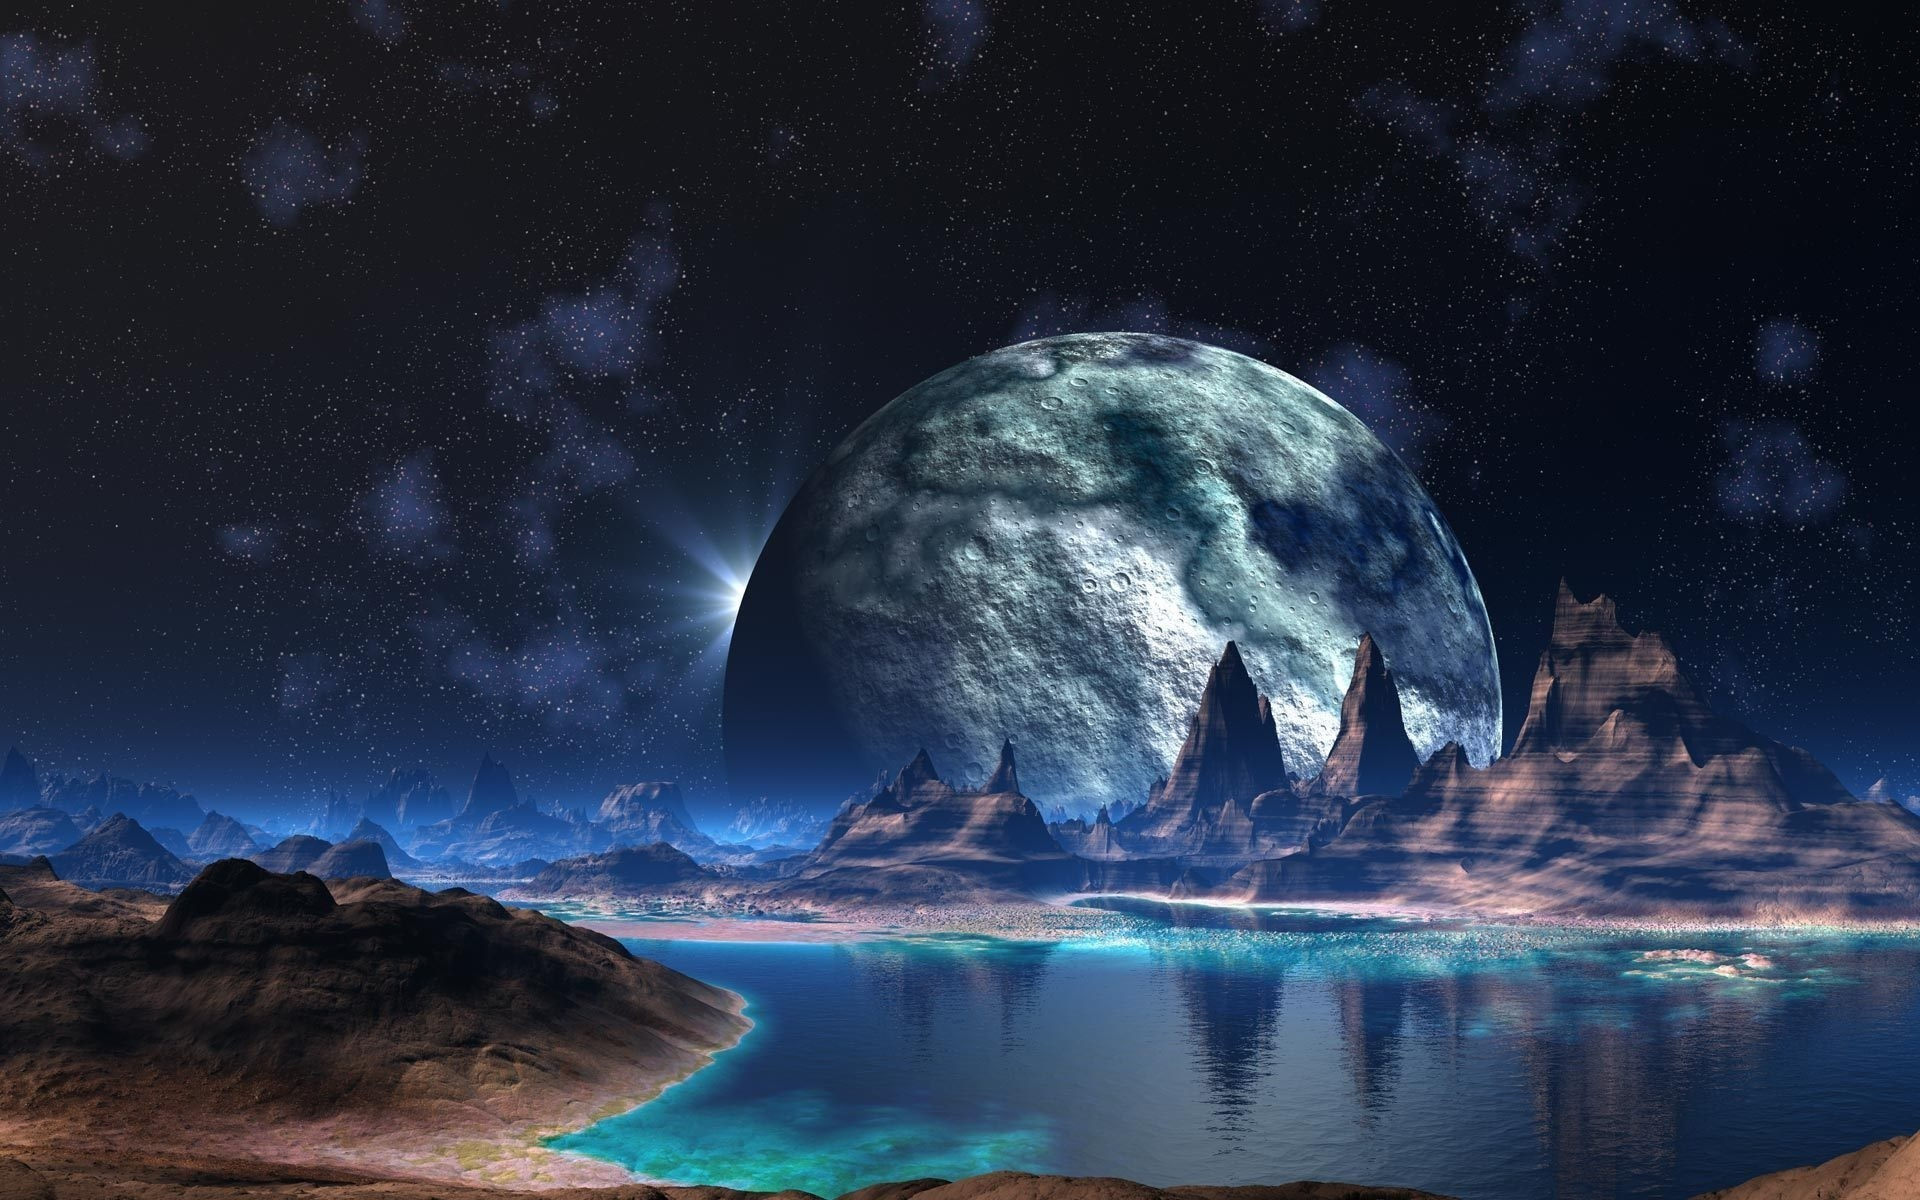 Fantasy moon astronomy water travel planet ocean sky exploration HD  wallpaper. Android wallpapers for free.